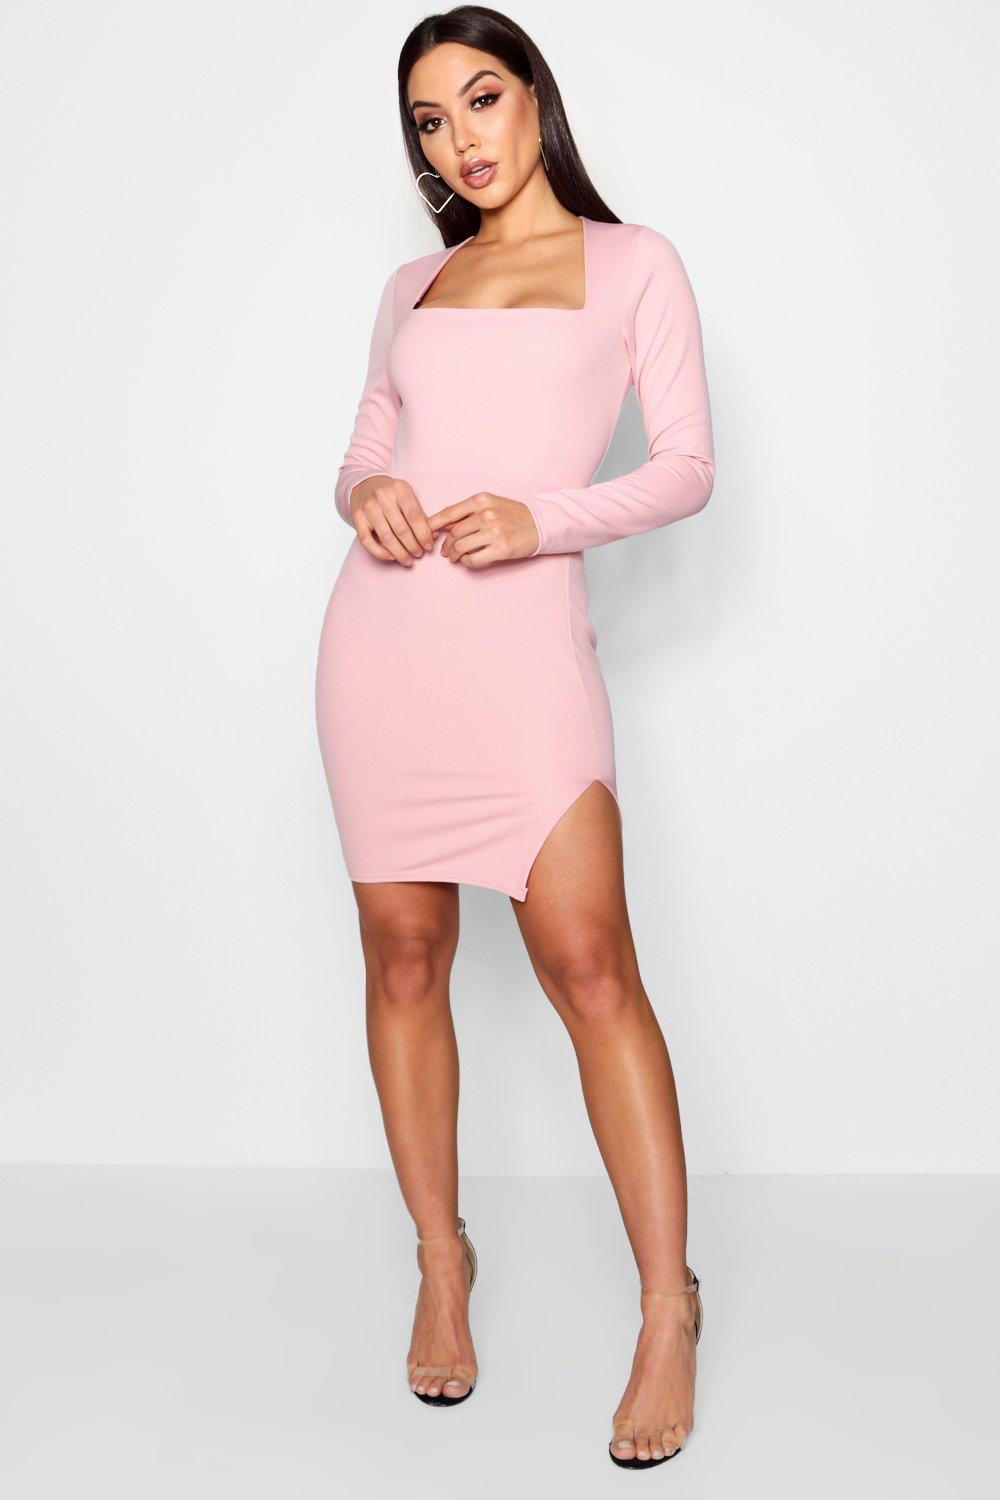 32a79d1fcc8b Boohoo Square Neck Long Sleeve Bodycon Dress in Pink - Lyst